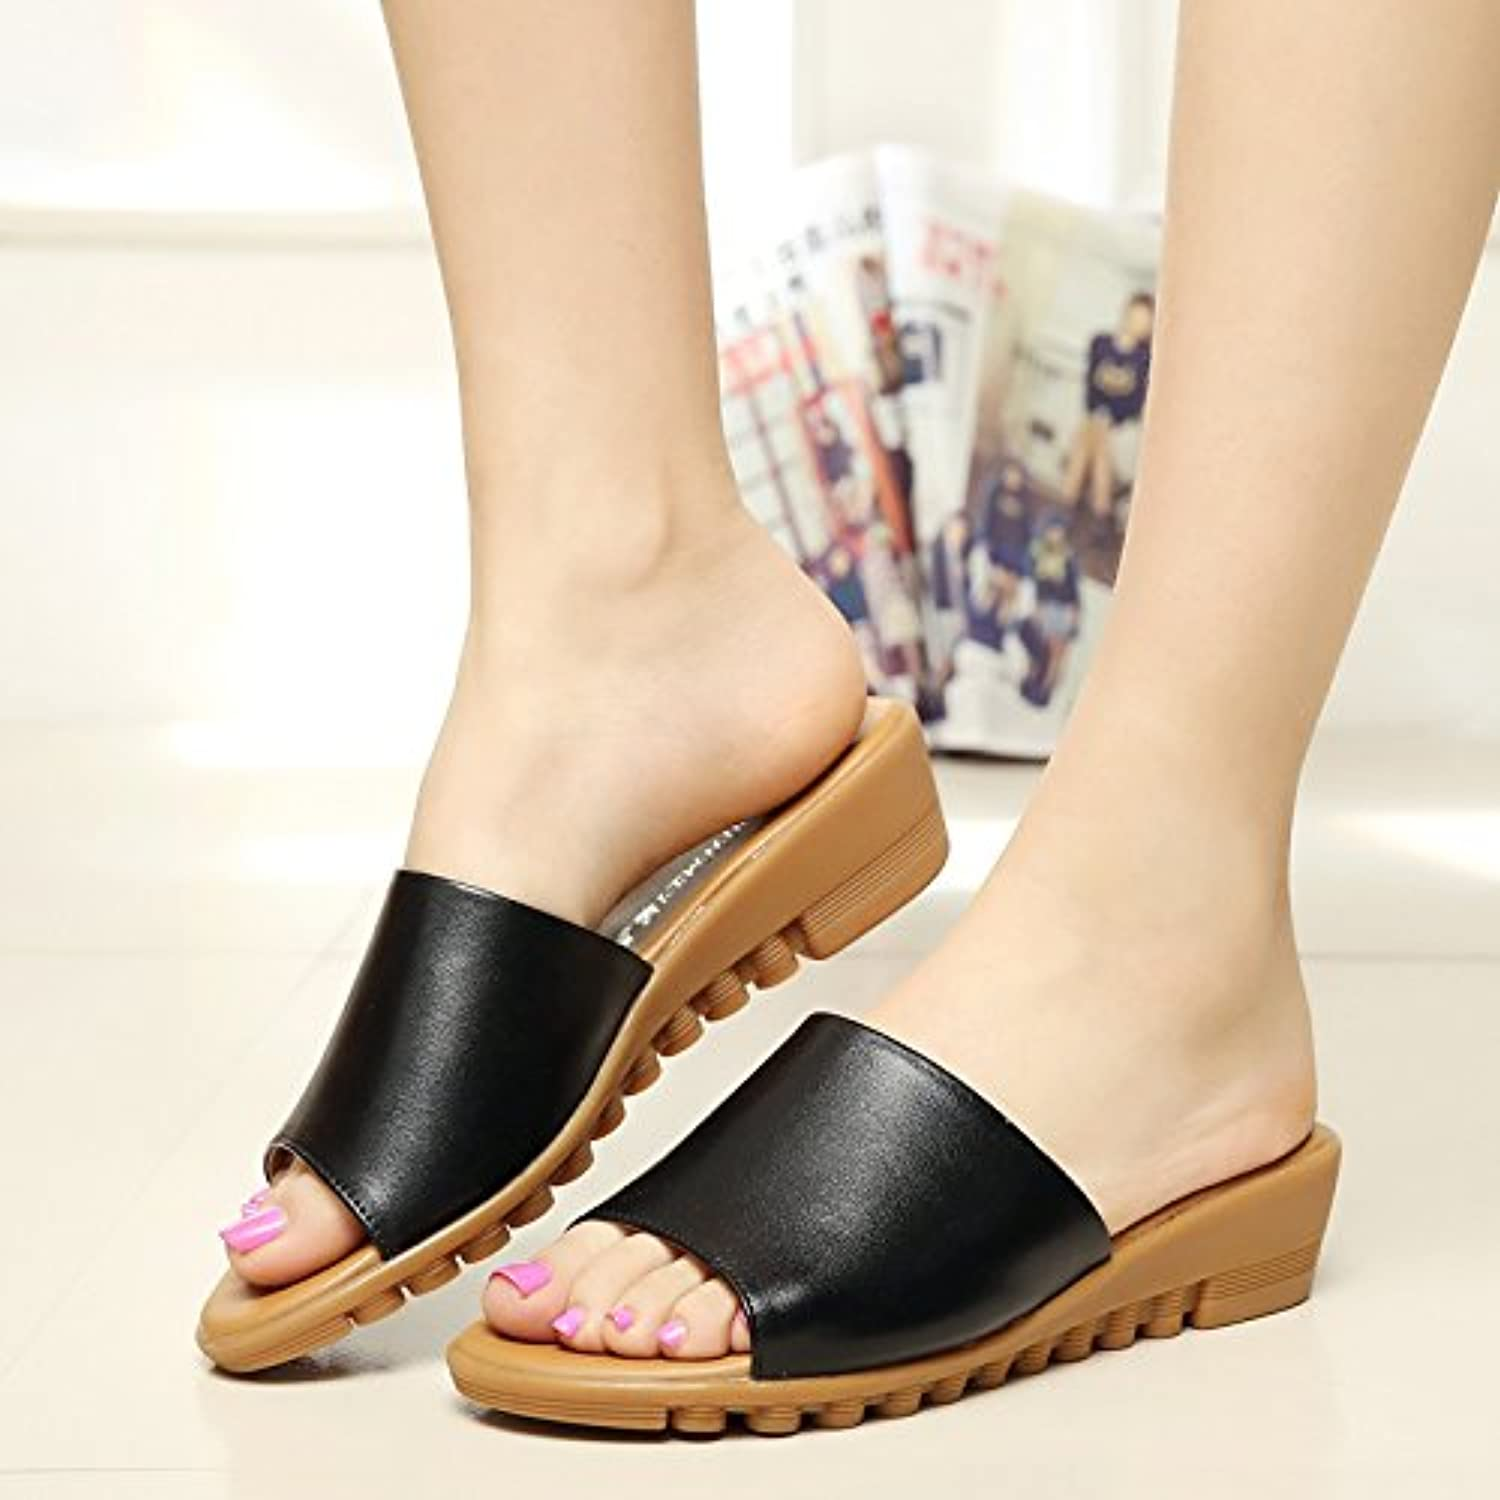 9fc7409c4be731 YMFIE Summer fashion comfortable leather flat sandals and slippers soft  bottom slip open toe beach shoes B07FJMXSZ4 Parent 6ce1bc